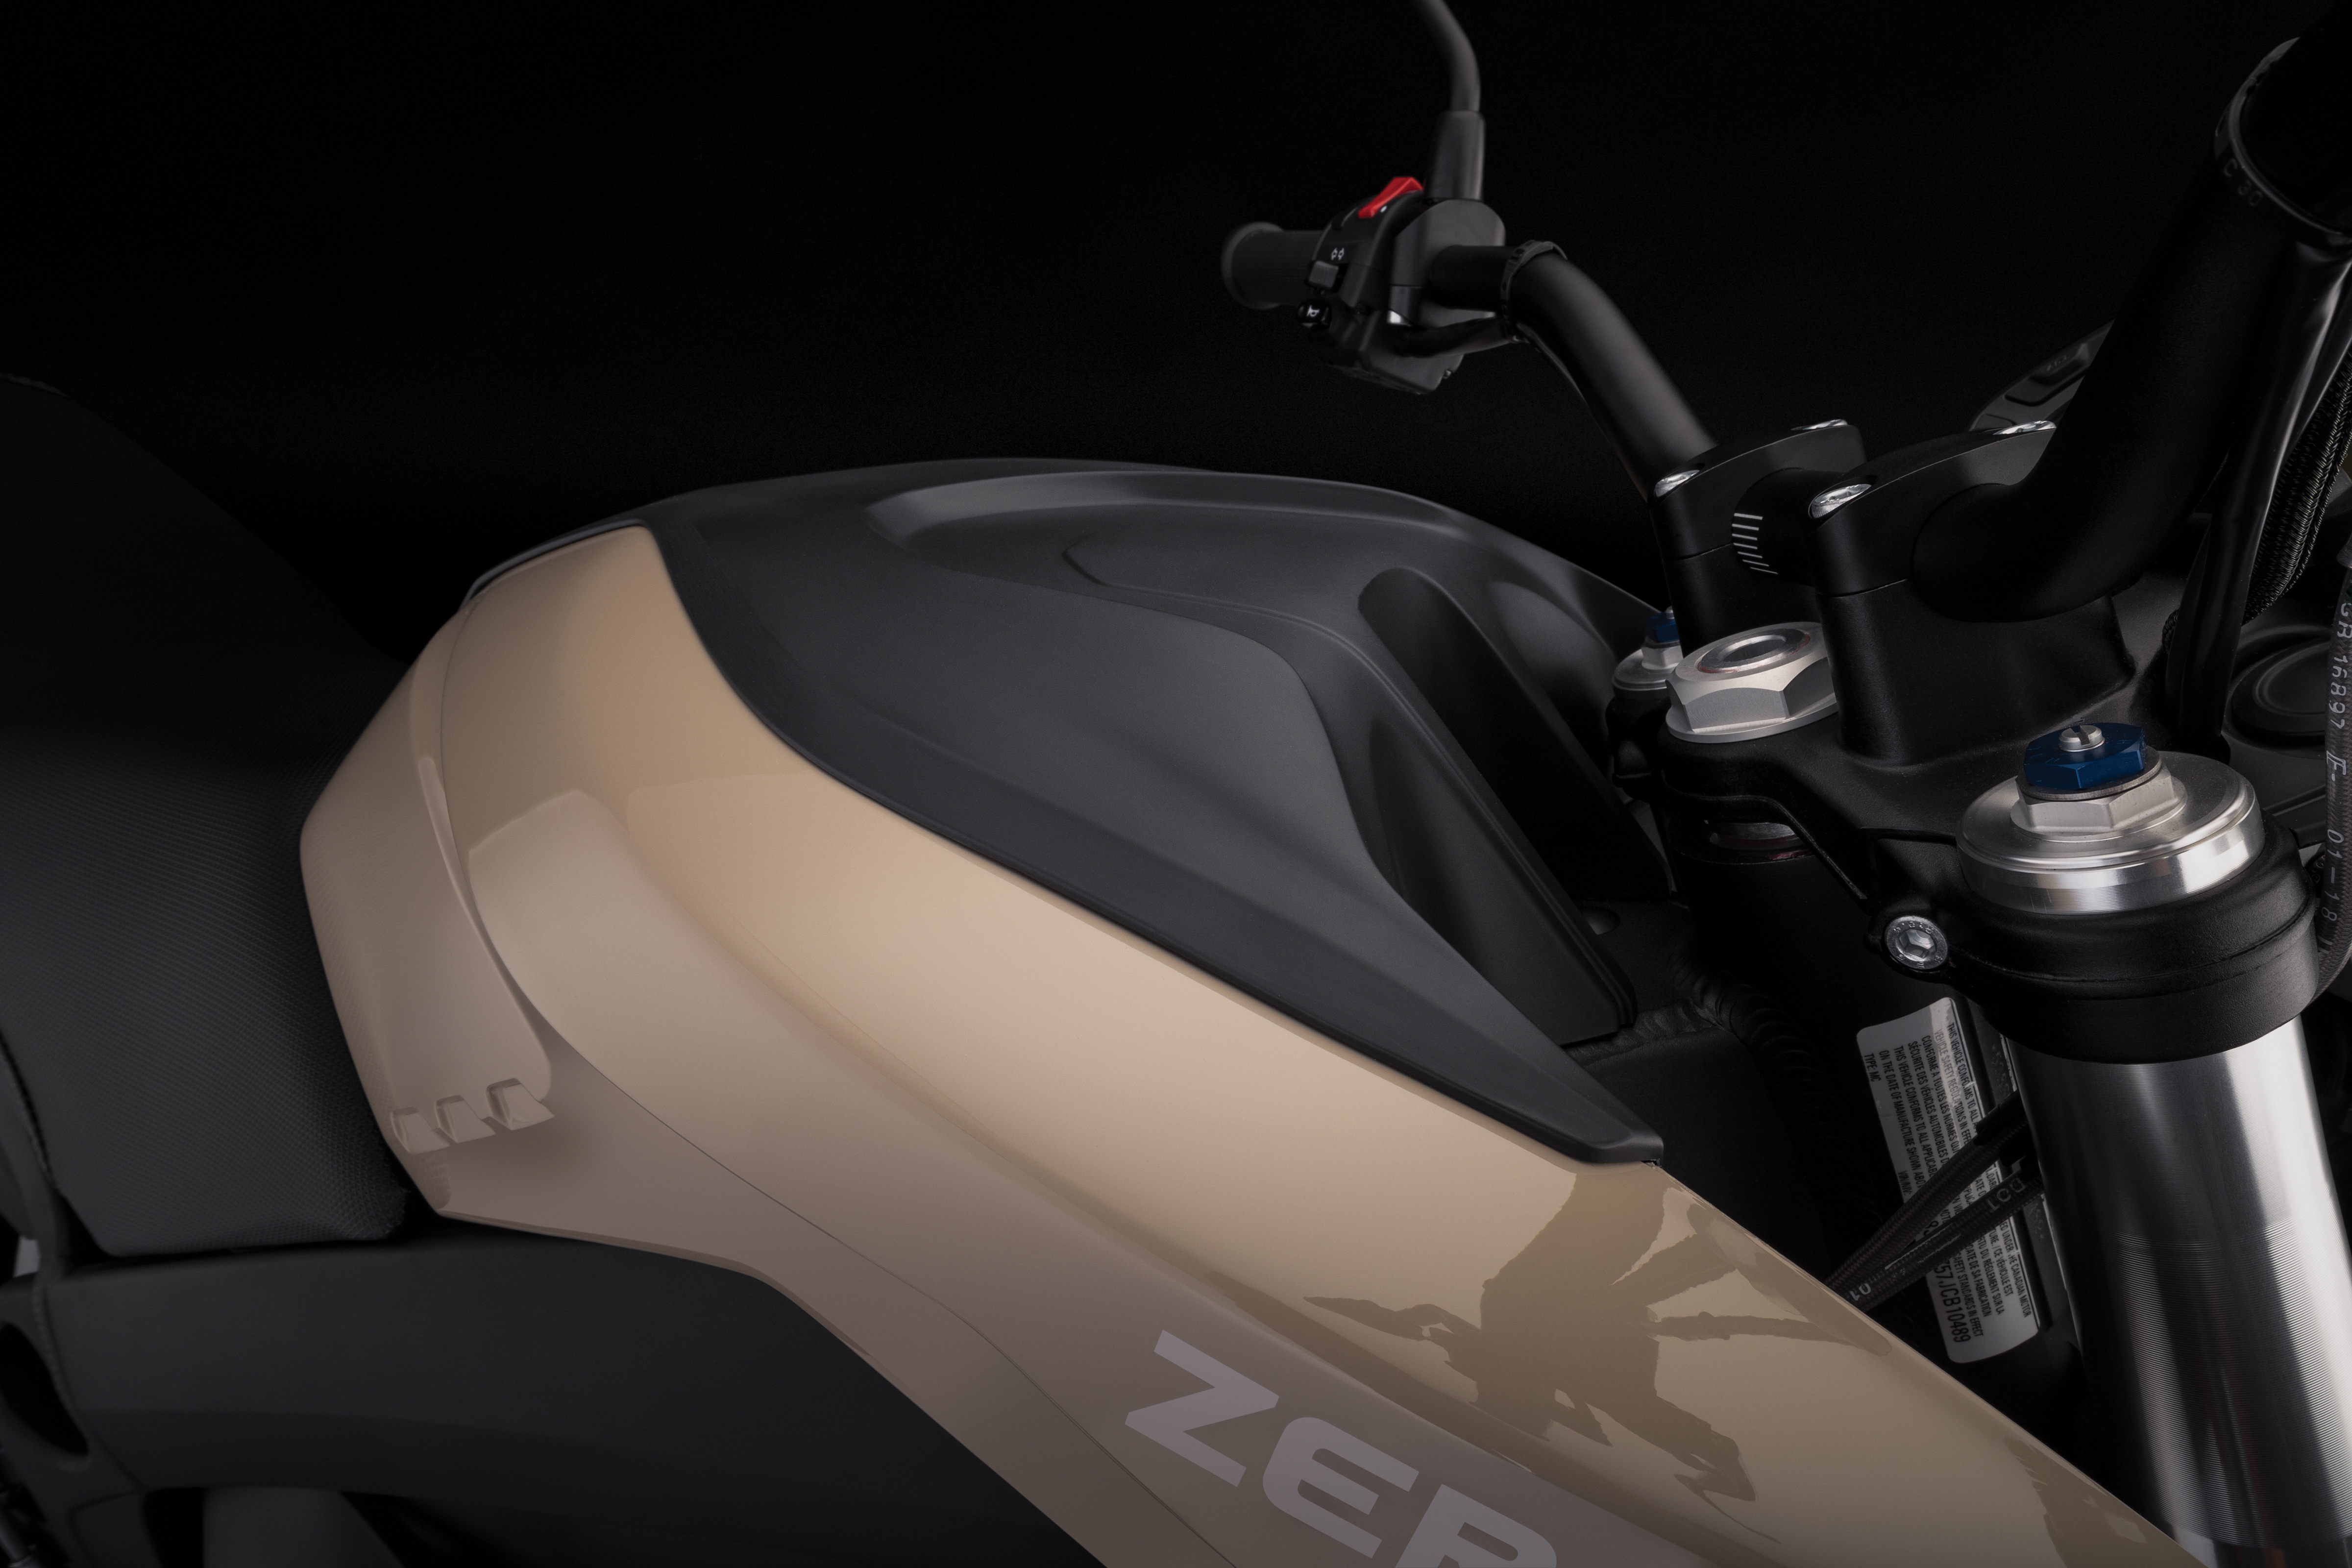 2019 Zero DS Electric Motorcycle: Power Tank